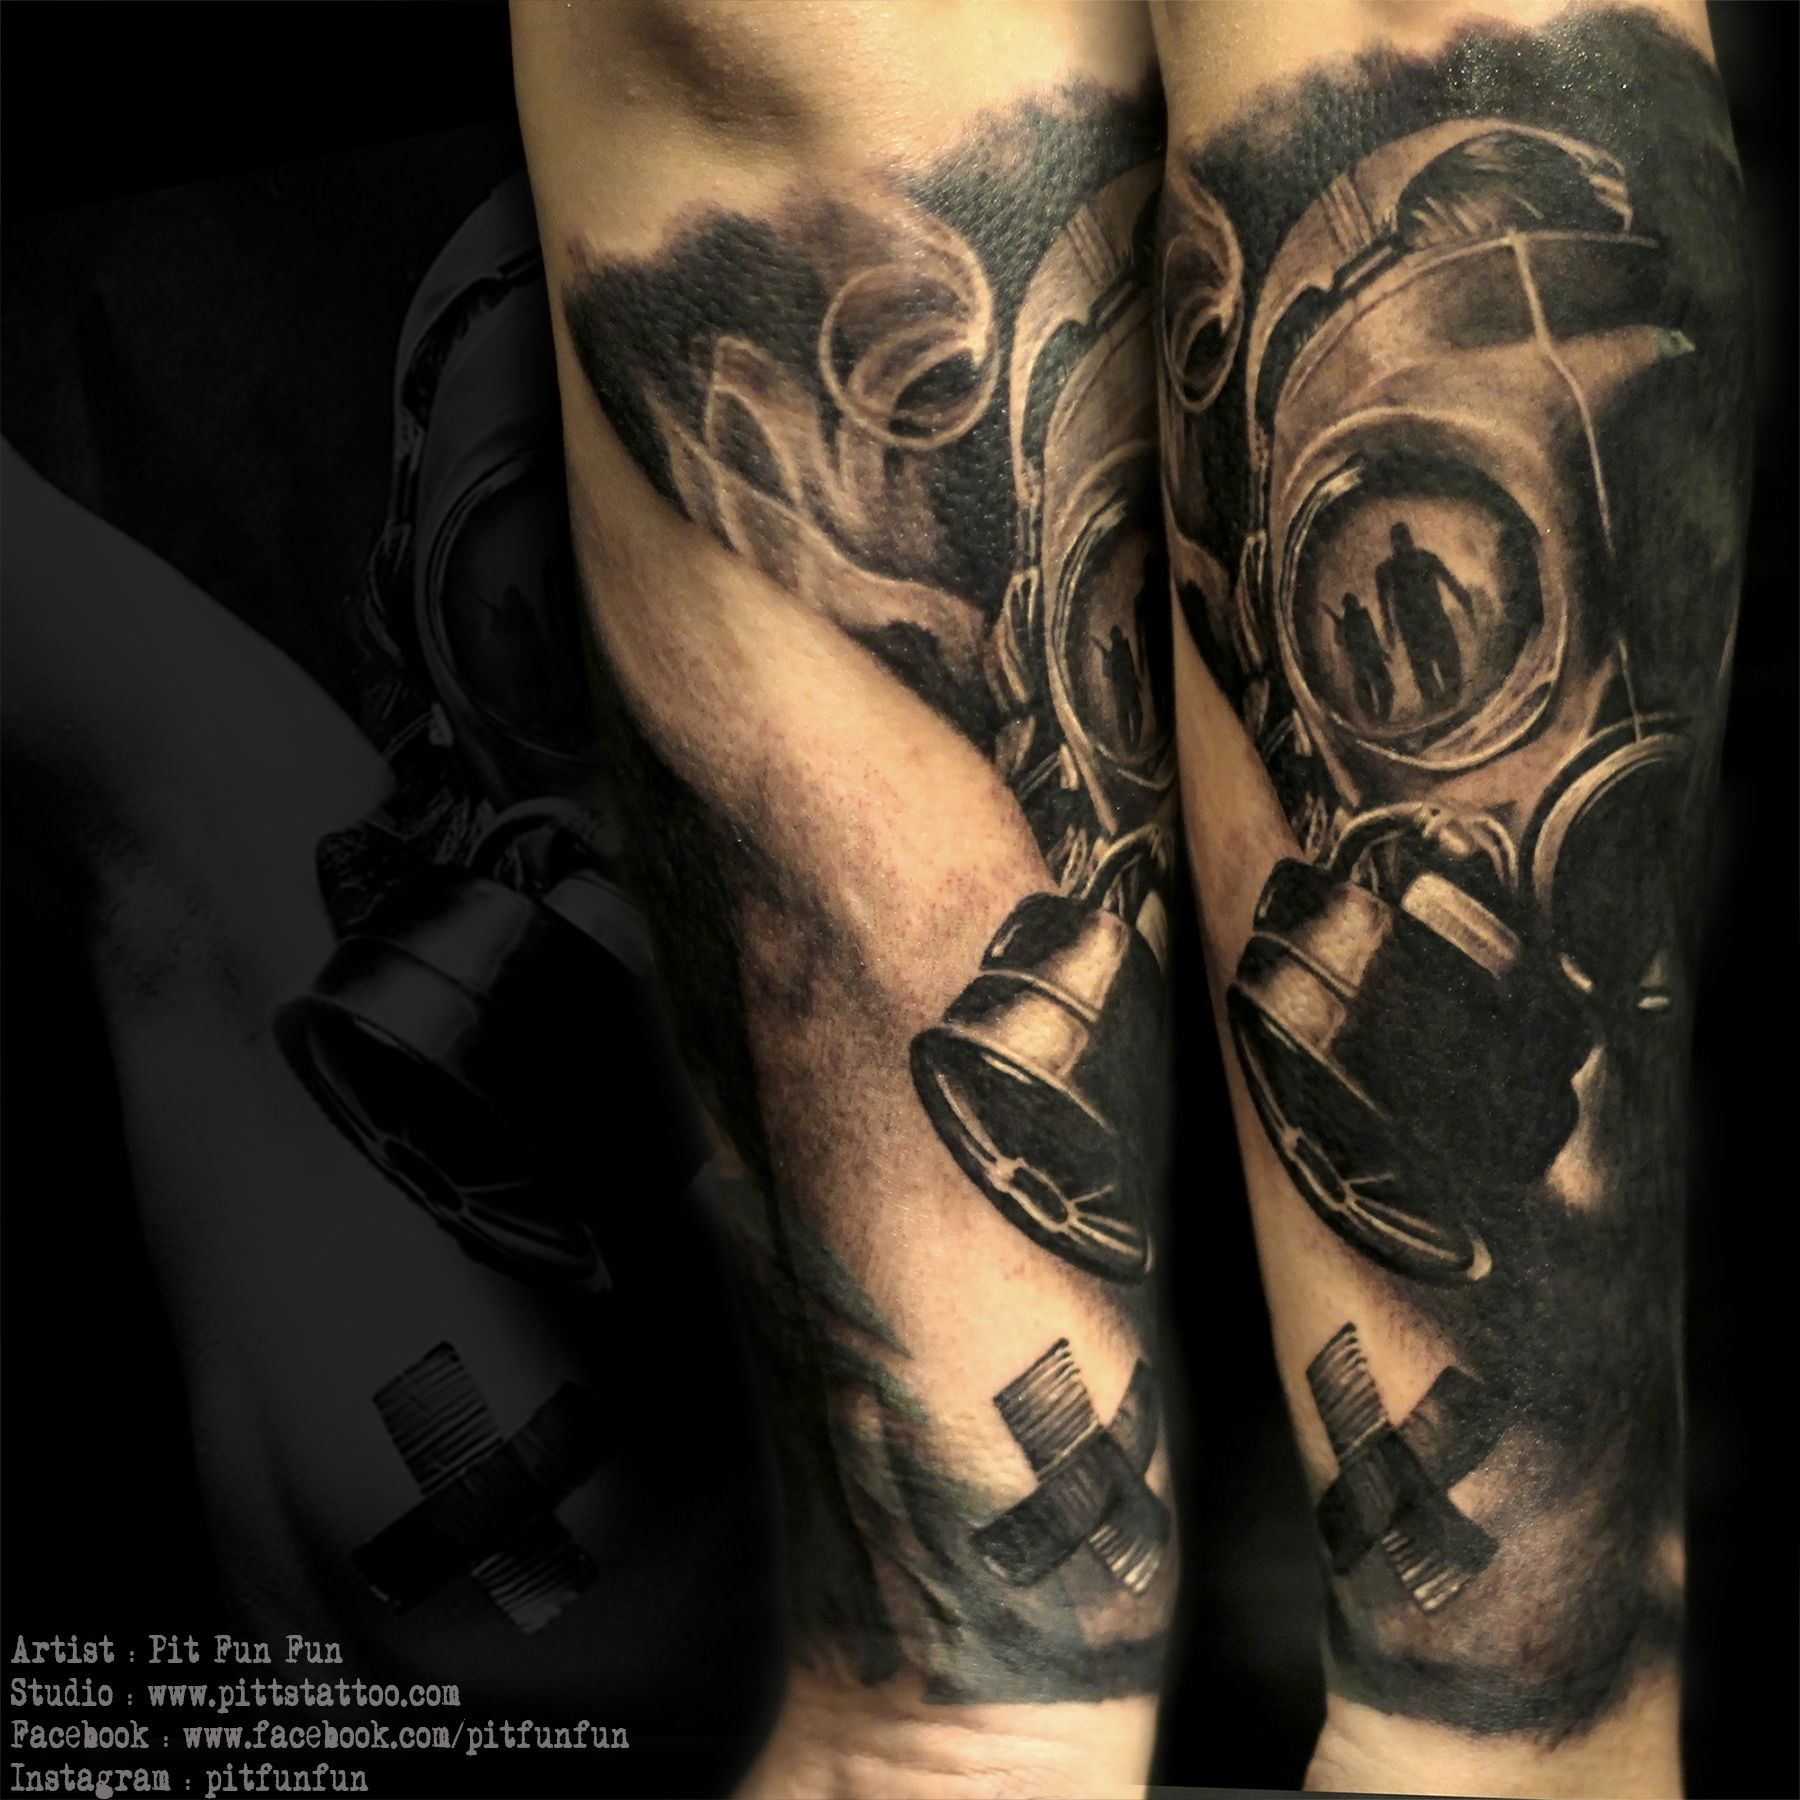 44 best gas mask tattoos collection - Gas Mask Tattoo Cover Up Www Pittstattoo Com Facebook Fun Fun Official Page